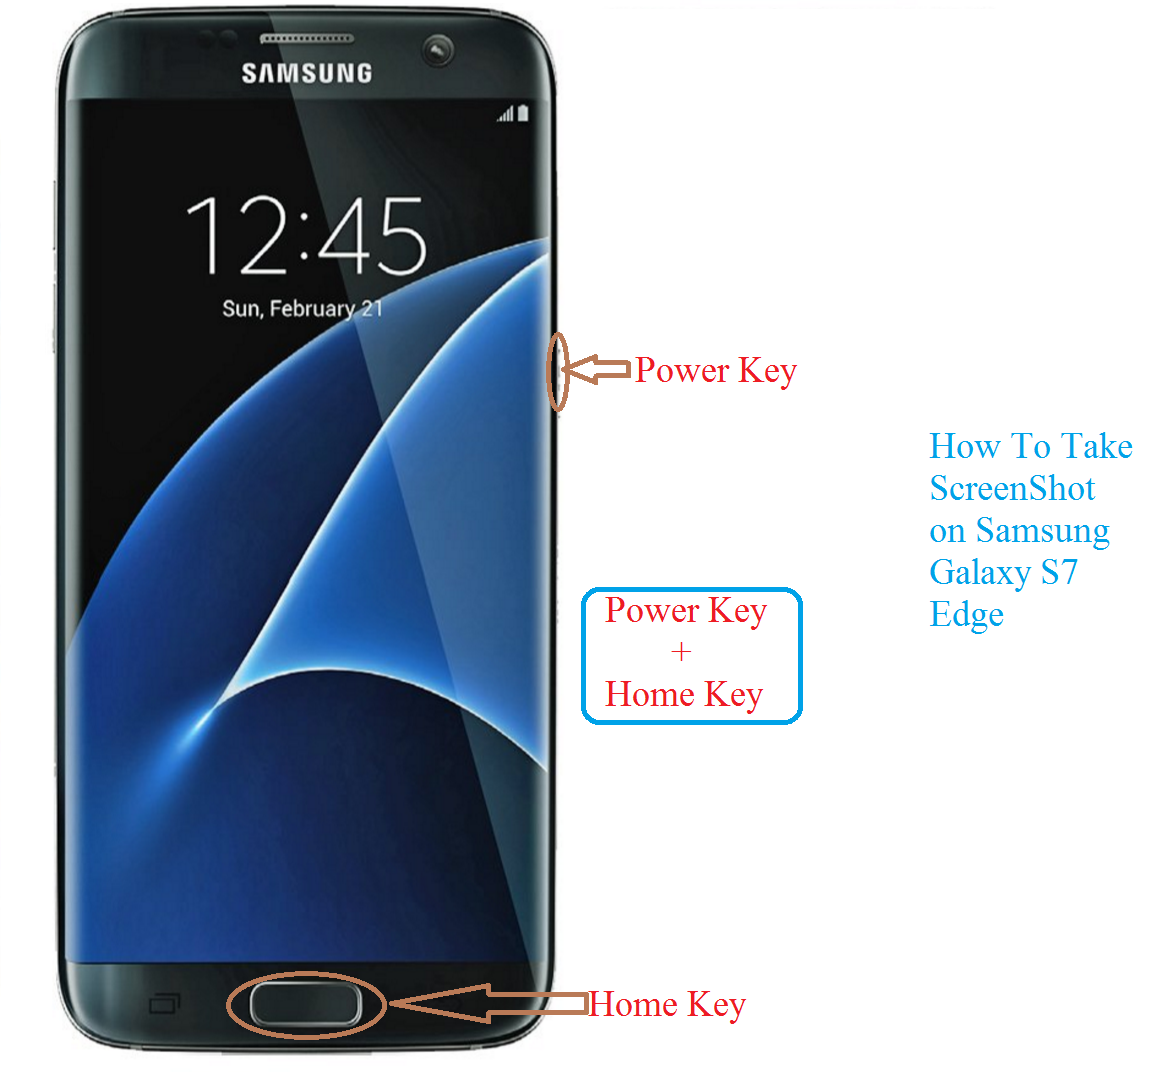 how to take screenshots with a samsung 5s